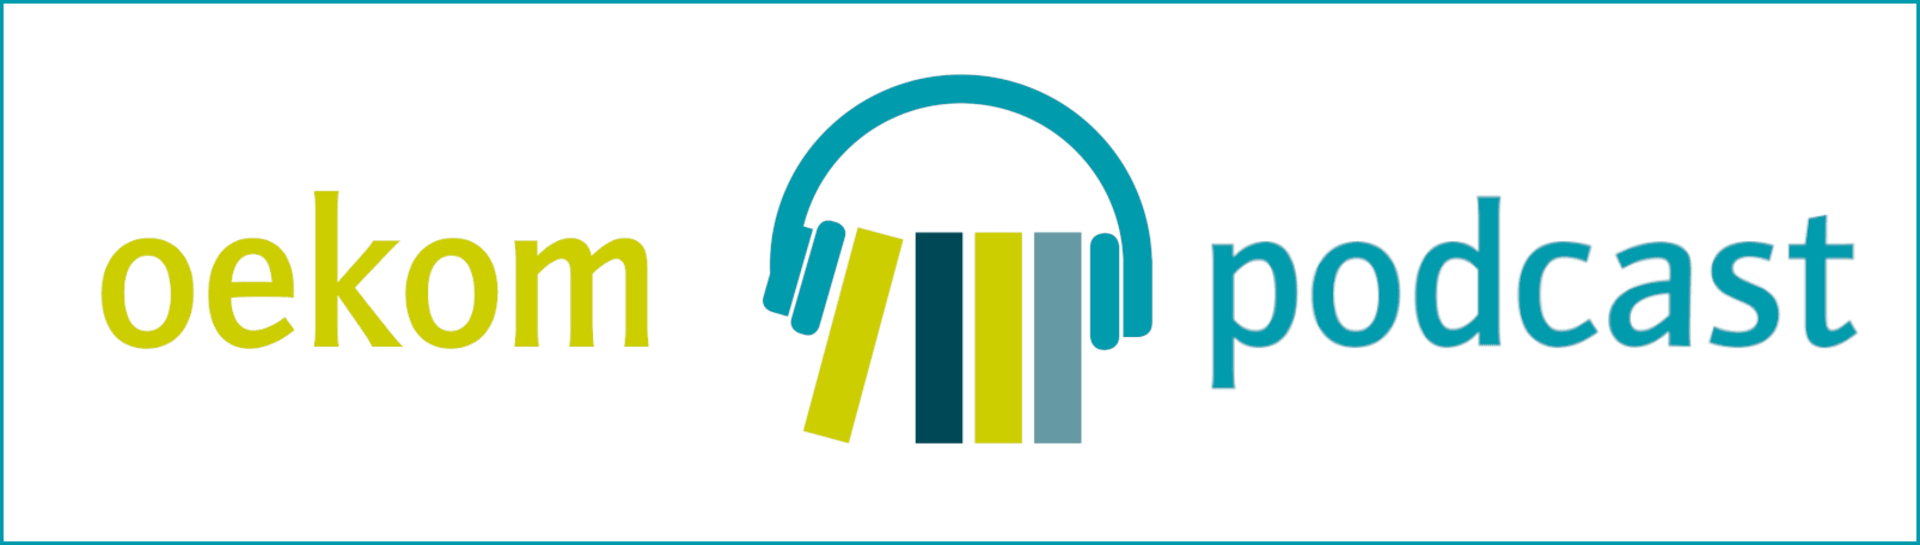 Logo des oekom podcasts